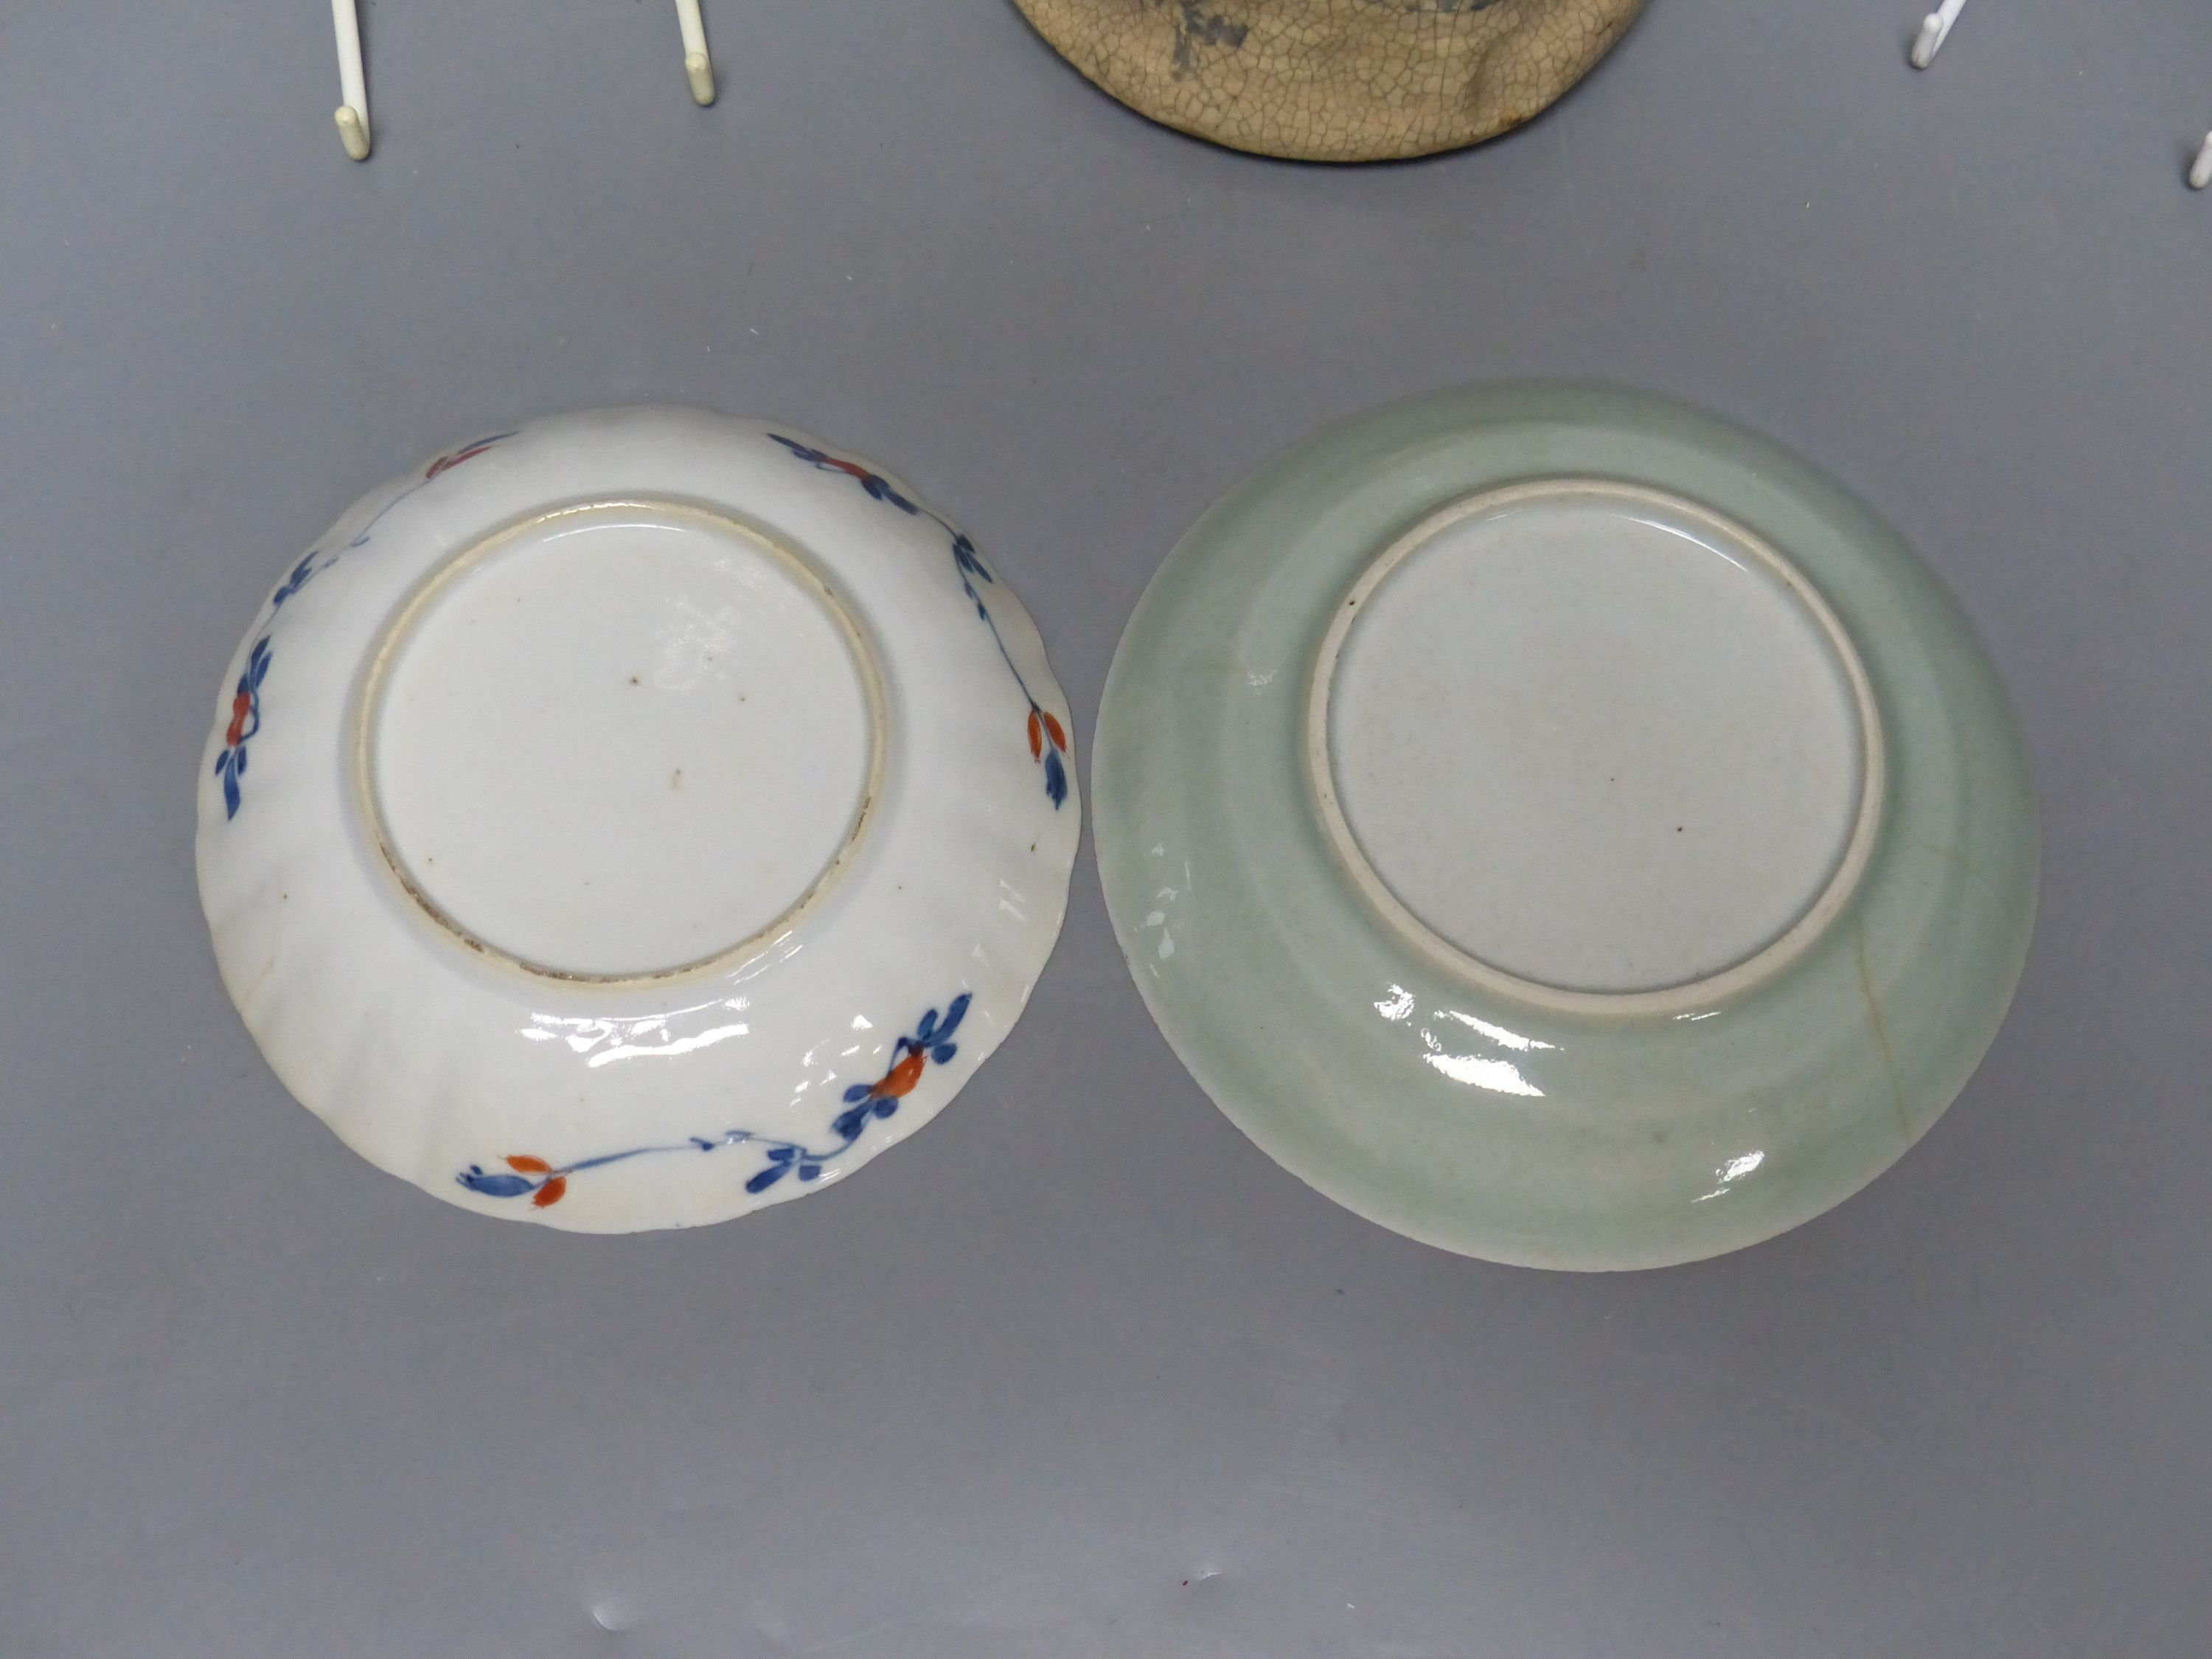 Chinese Imari pattern dishes, two others, a teapot, height 15cm, and a pottery bowl - Bild 4 aus 5